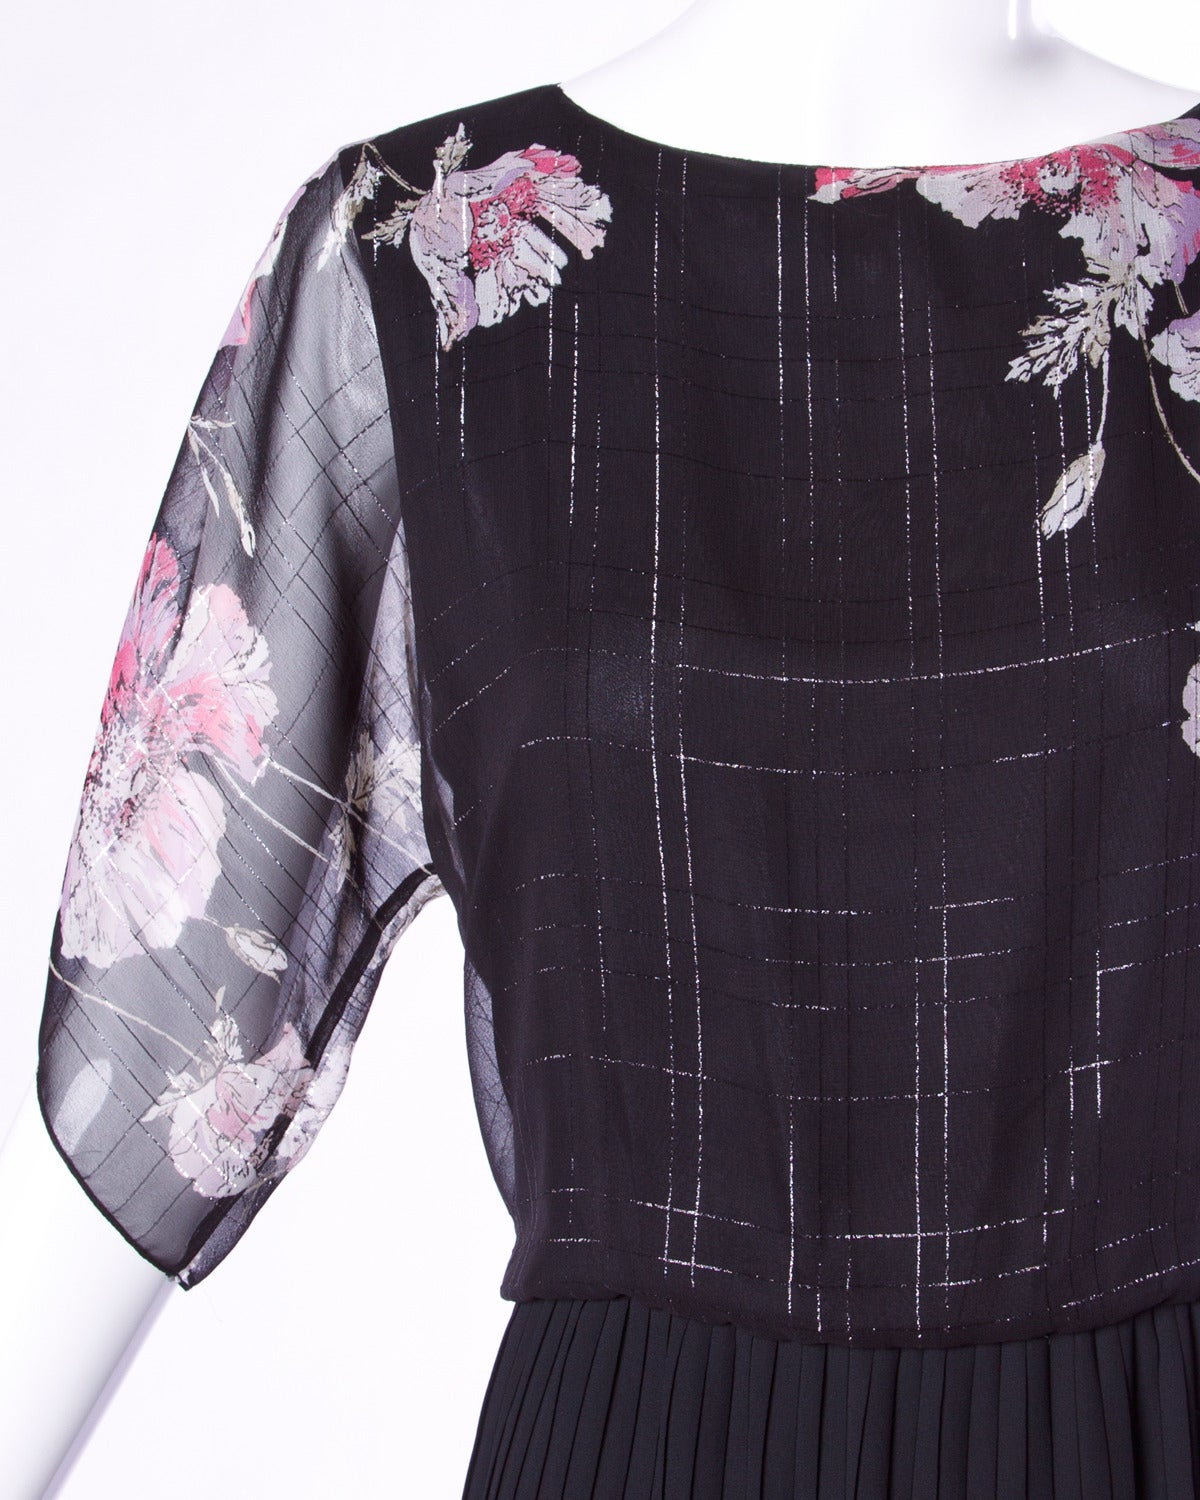 Reduced from $495! Vintage black dress with floral printed sheer flutter sleeves and metallic accents by Hanae Mori.